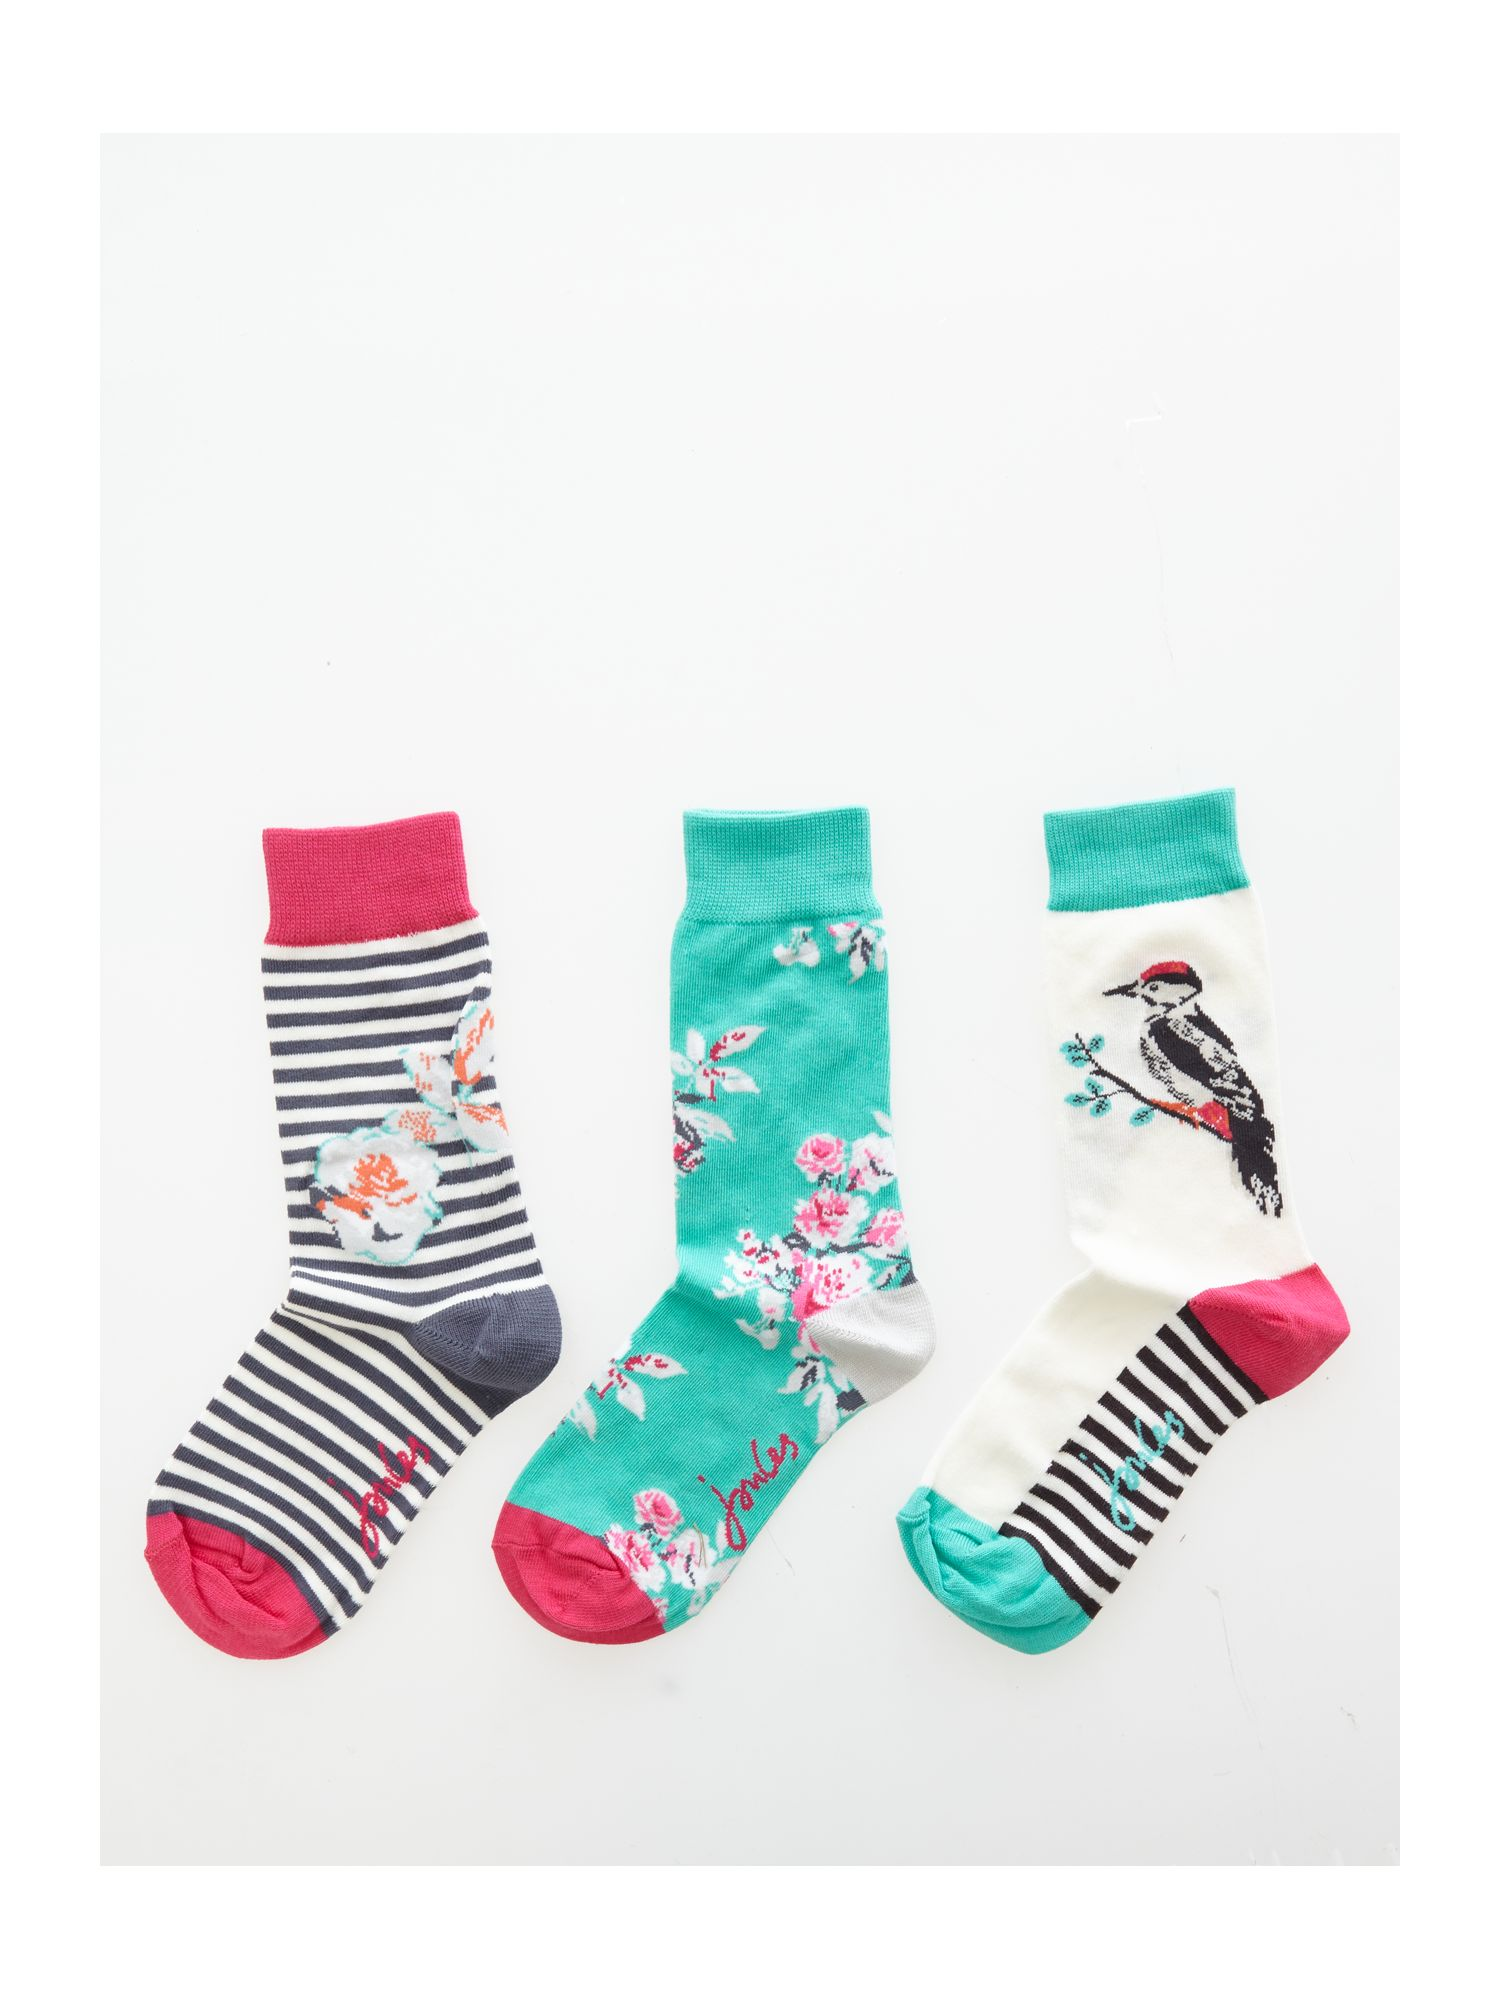 Joules Ankle socks set WhiteBlack